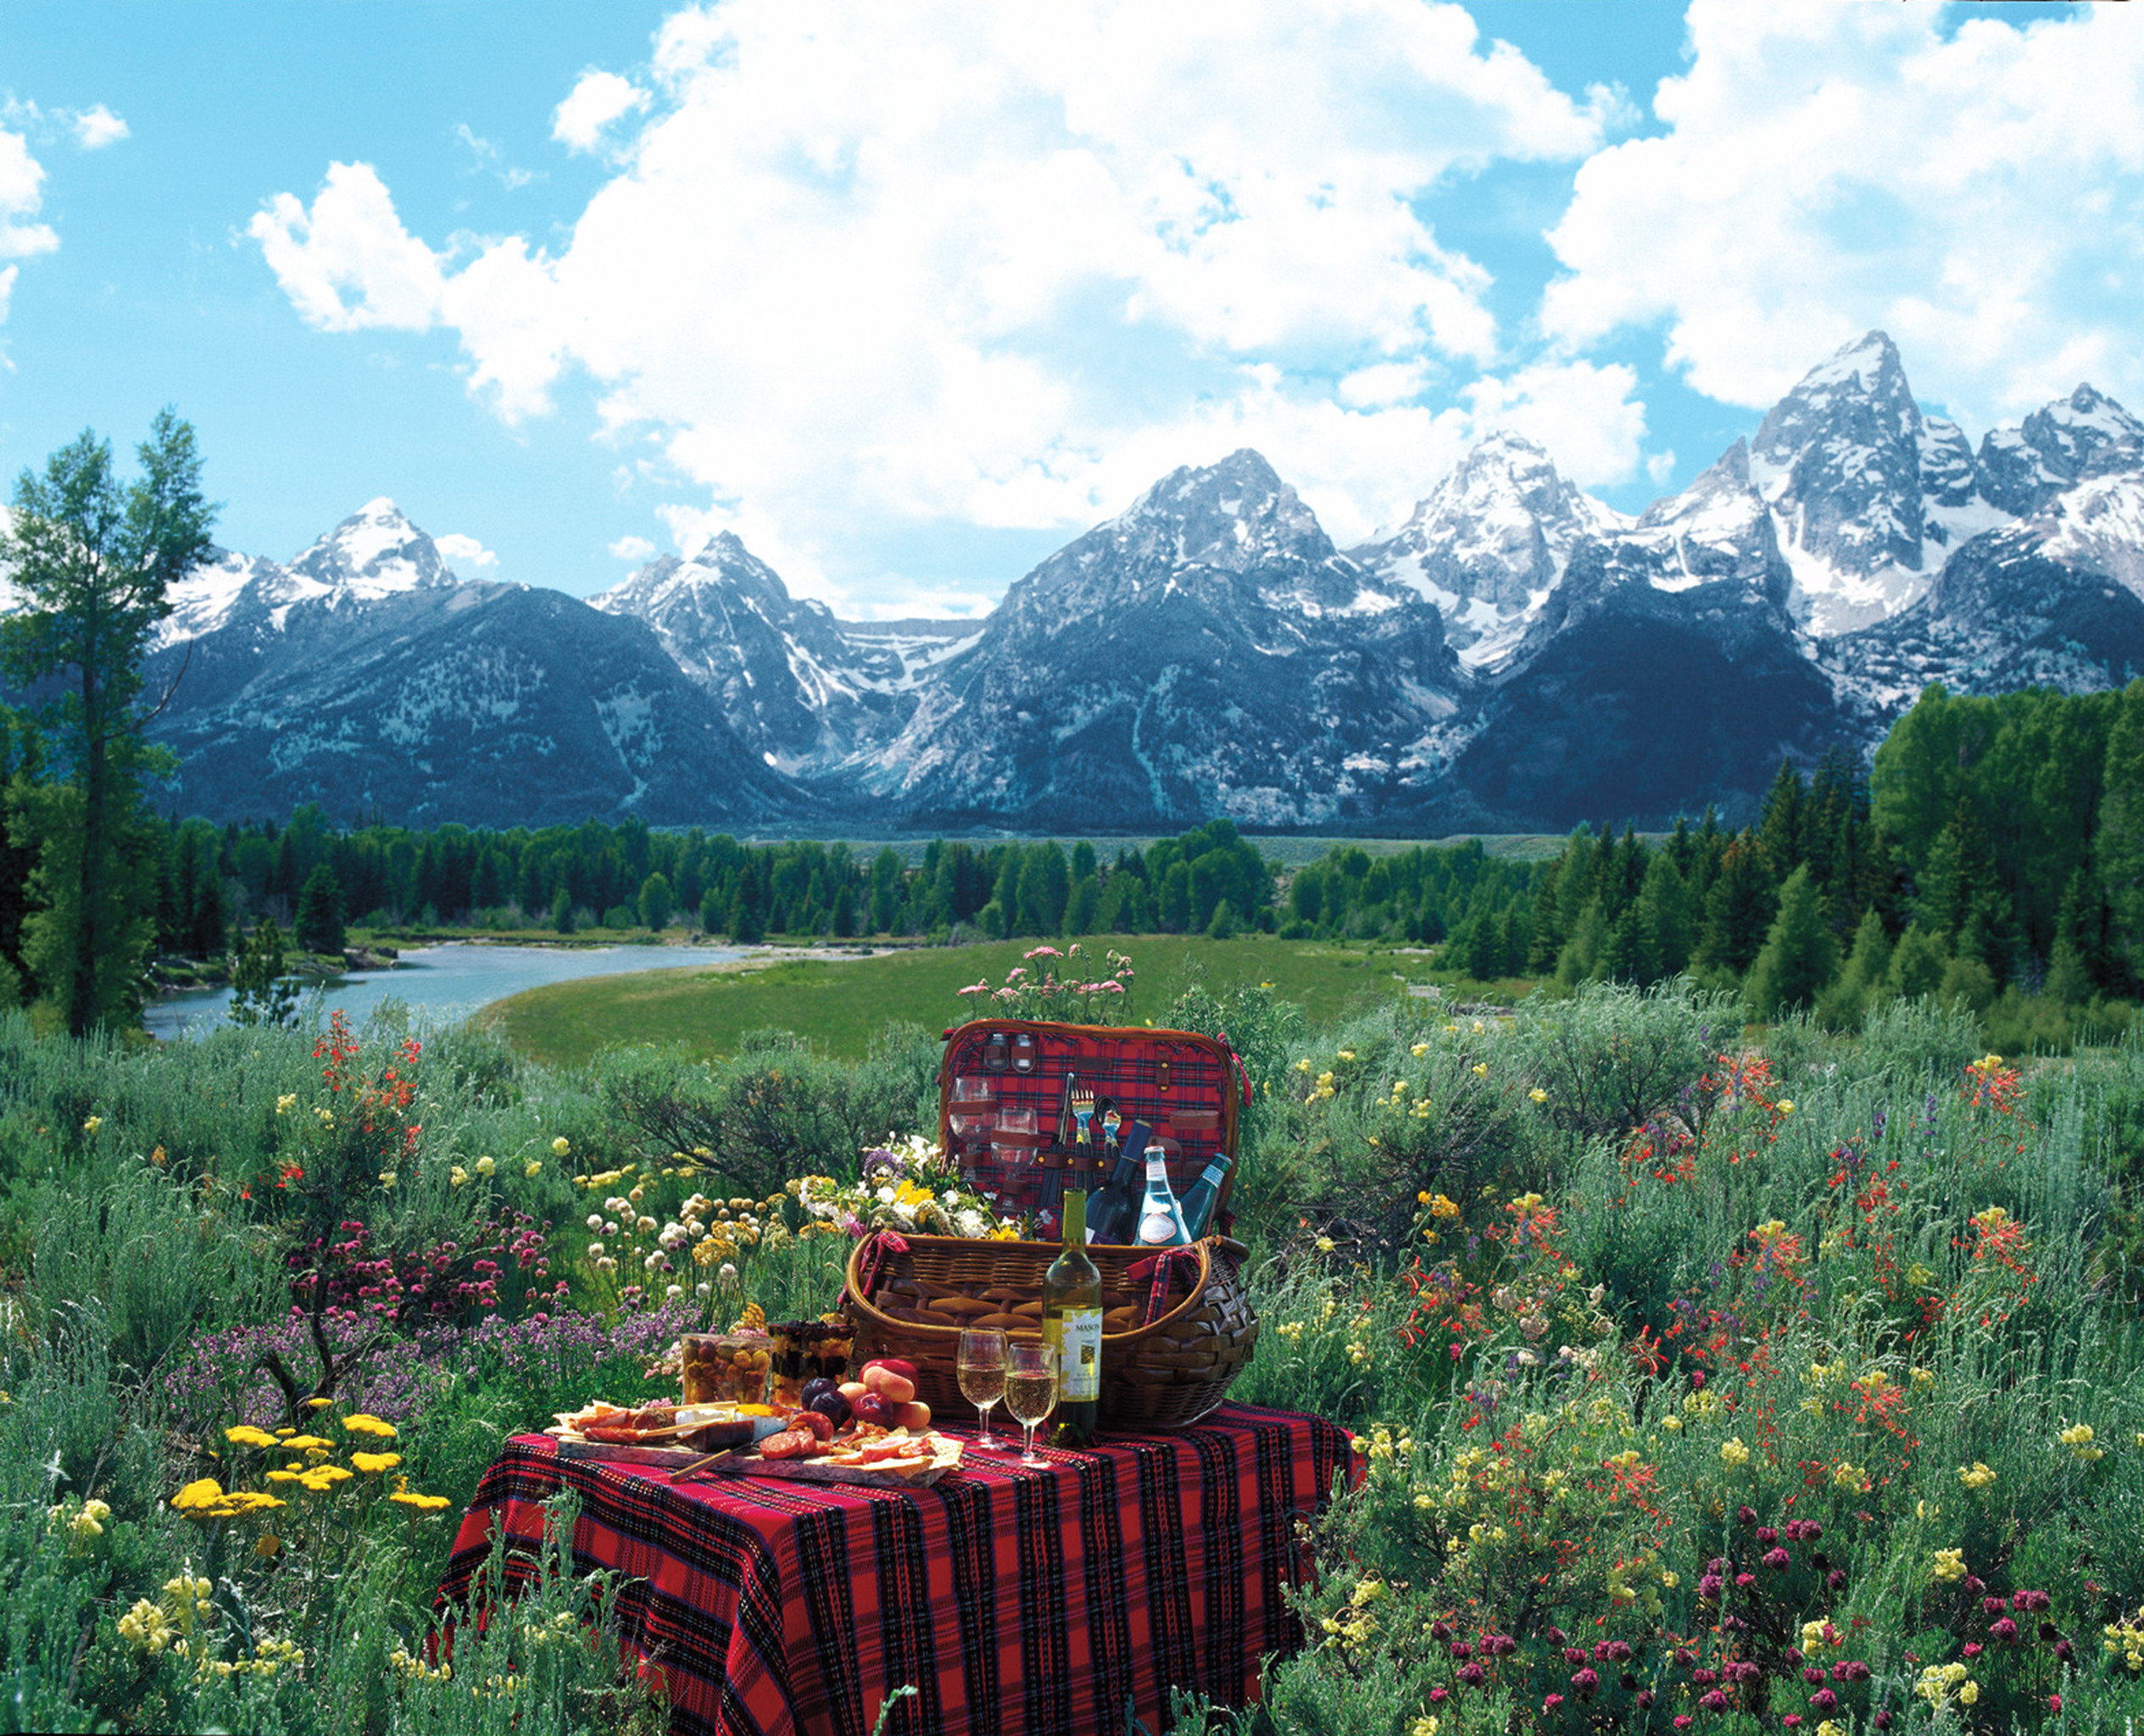 Grounds Mountains Nature Outdoors mountain sky tree mountainous landforms habitat wilderness mountain range natural environment ecosystem flower meadow grassland valley landscape rural area alps plateau wildflower Lake woodland autumn plant